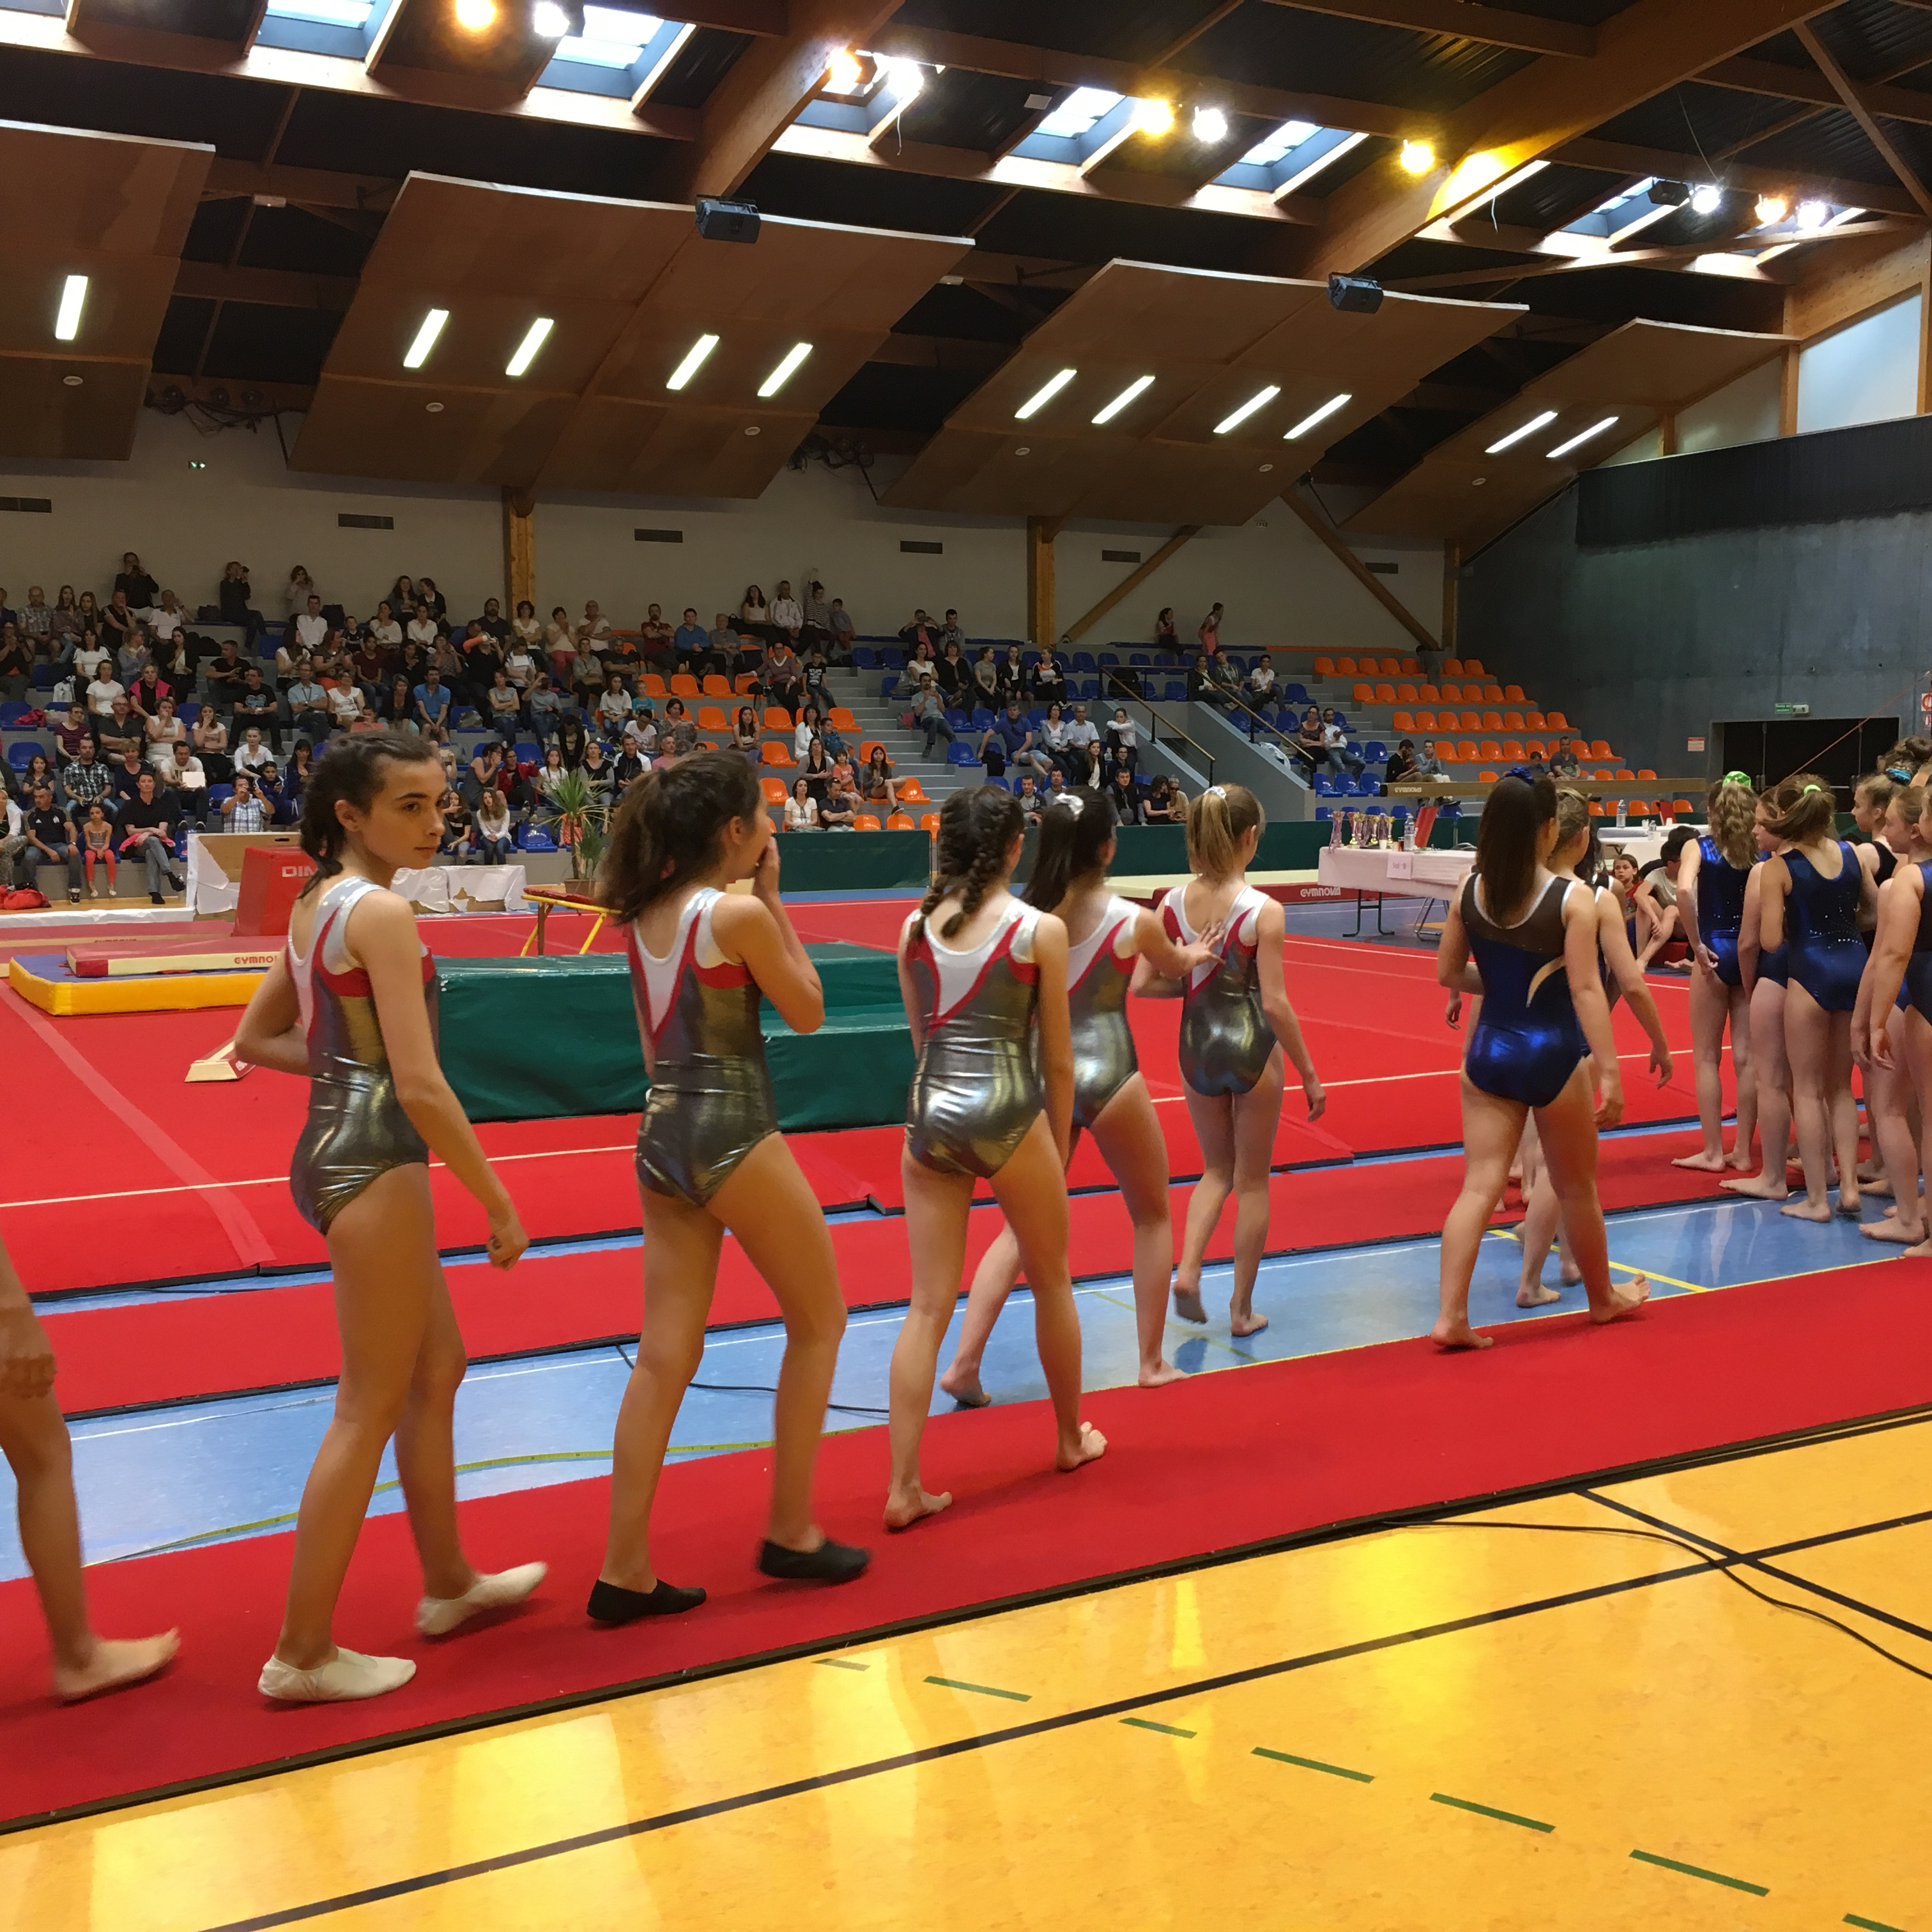 Thouars Gym 79 Journees Evenements Saison 2016 2017